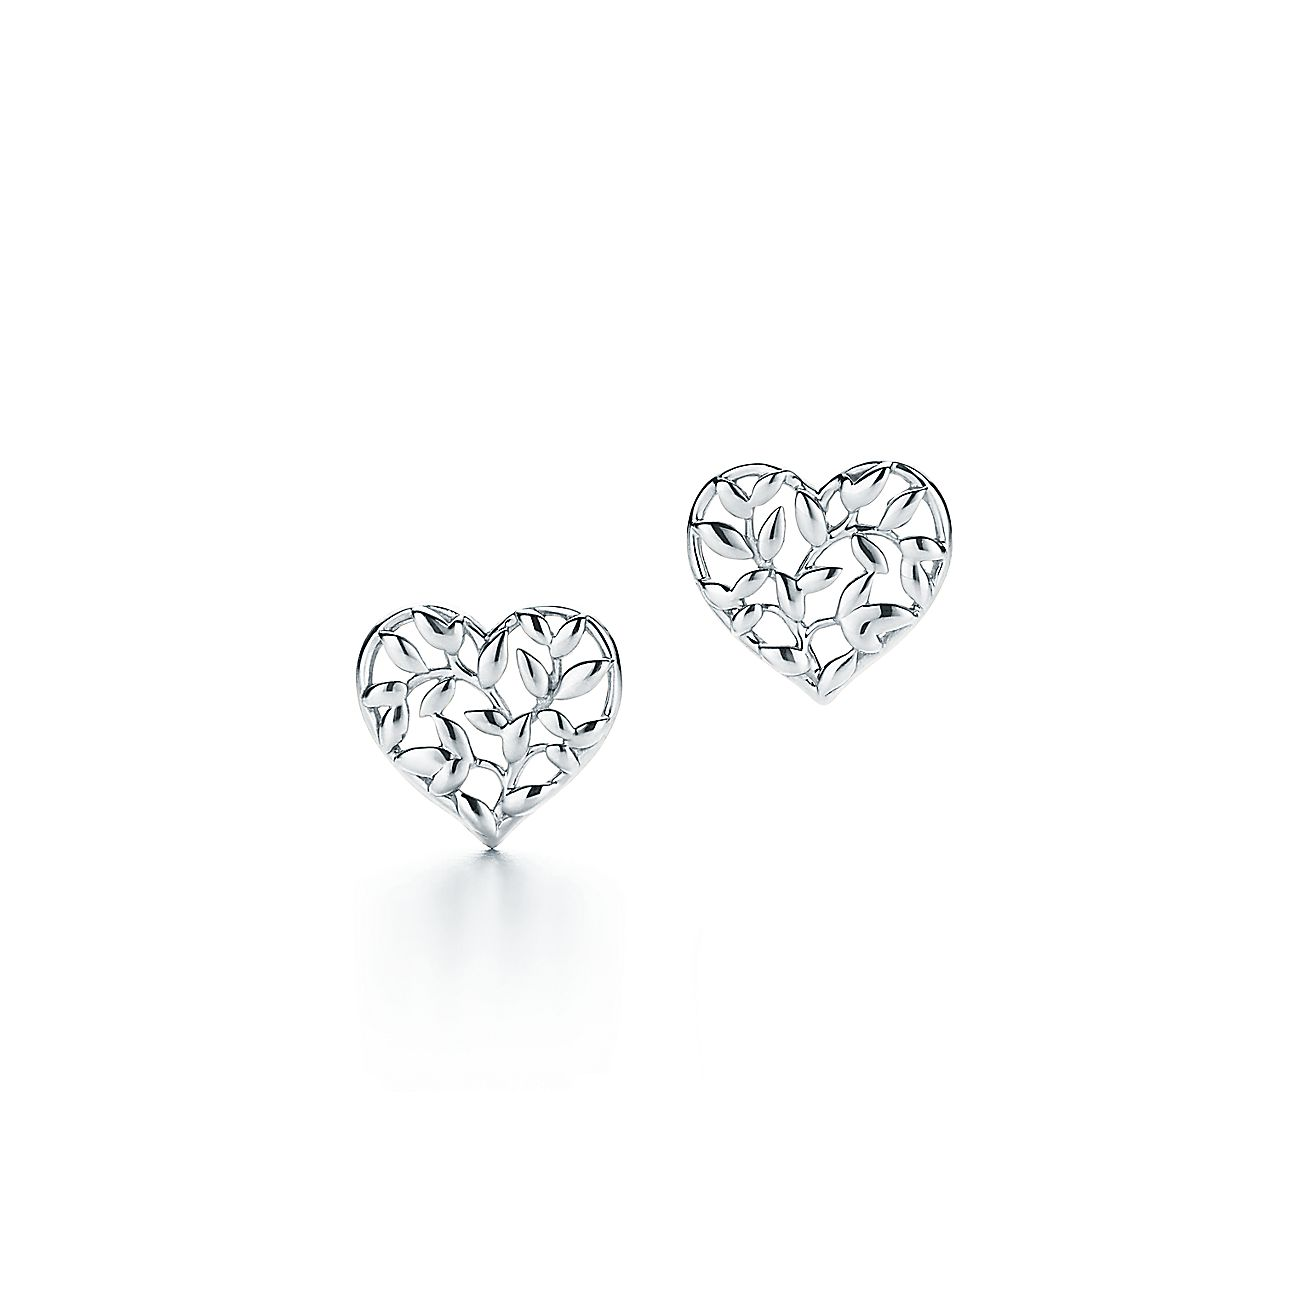 caviar signature lagos jewelry earrings heart